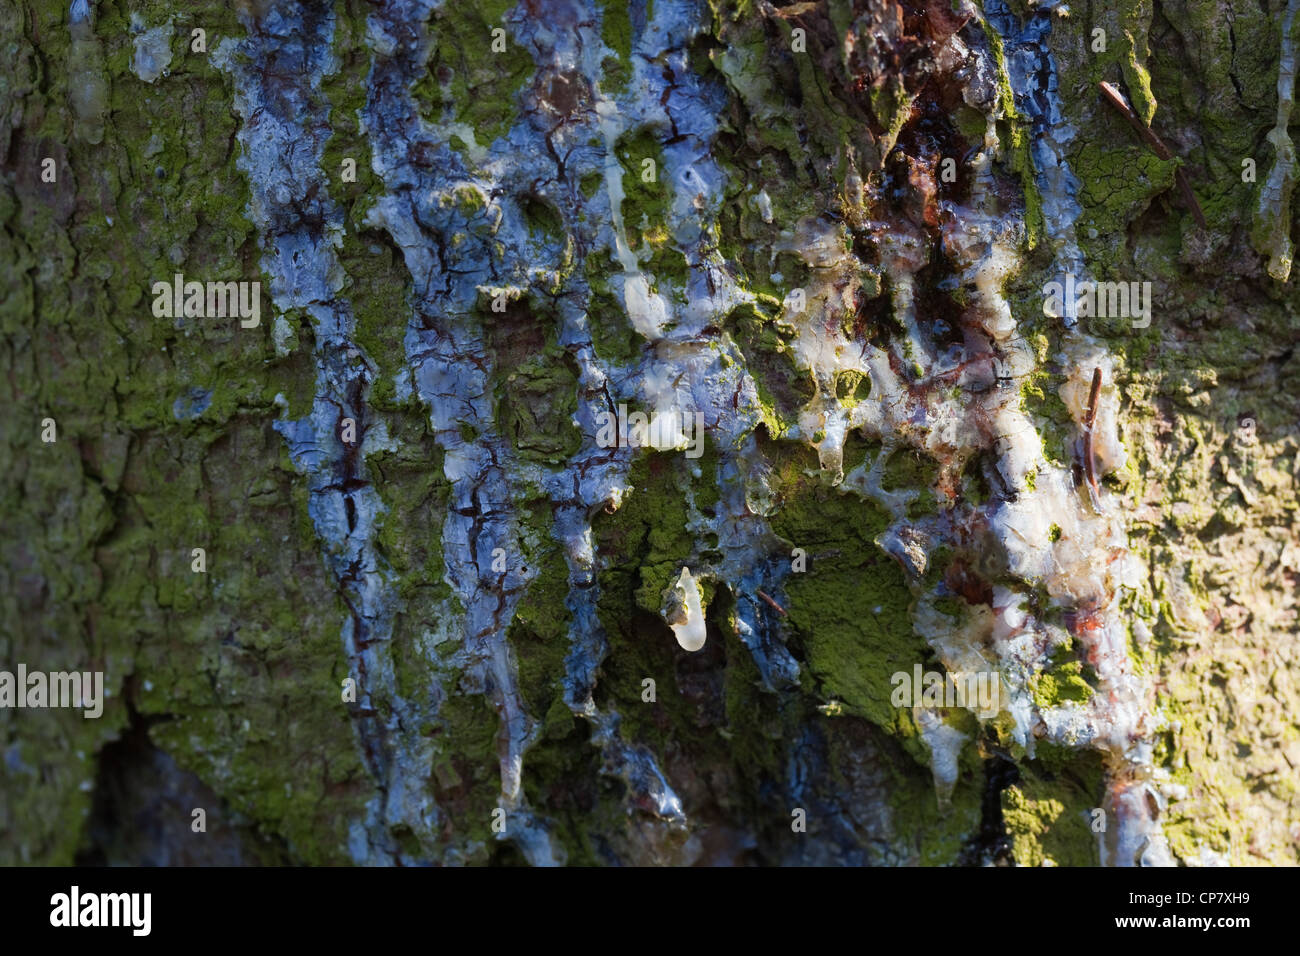 Norway Spruce (Picea abies). Trunk with resin running down from an injury point. - Stock Image